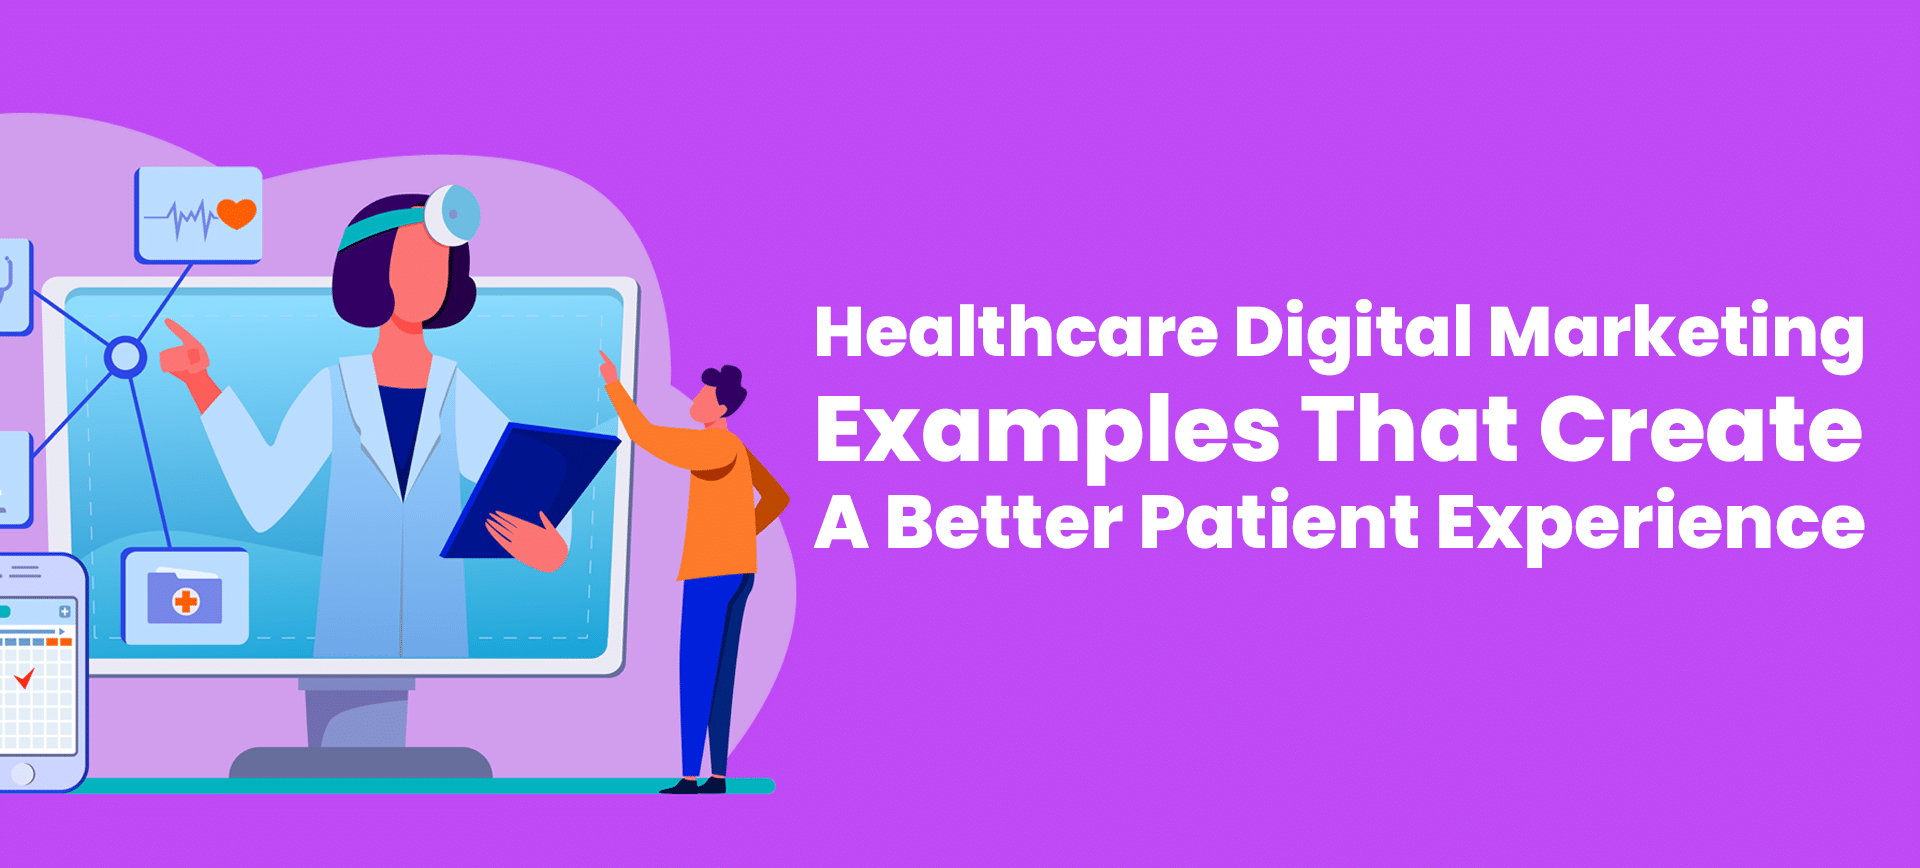 Healthcare Digital Marketing Examples That Create A Better Patient Experience